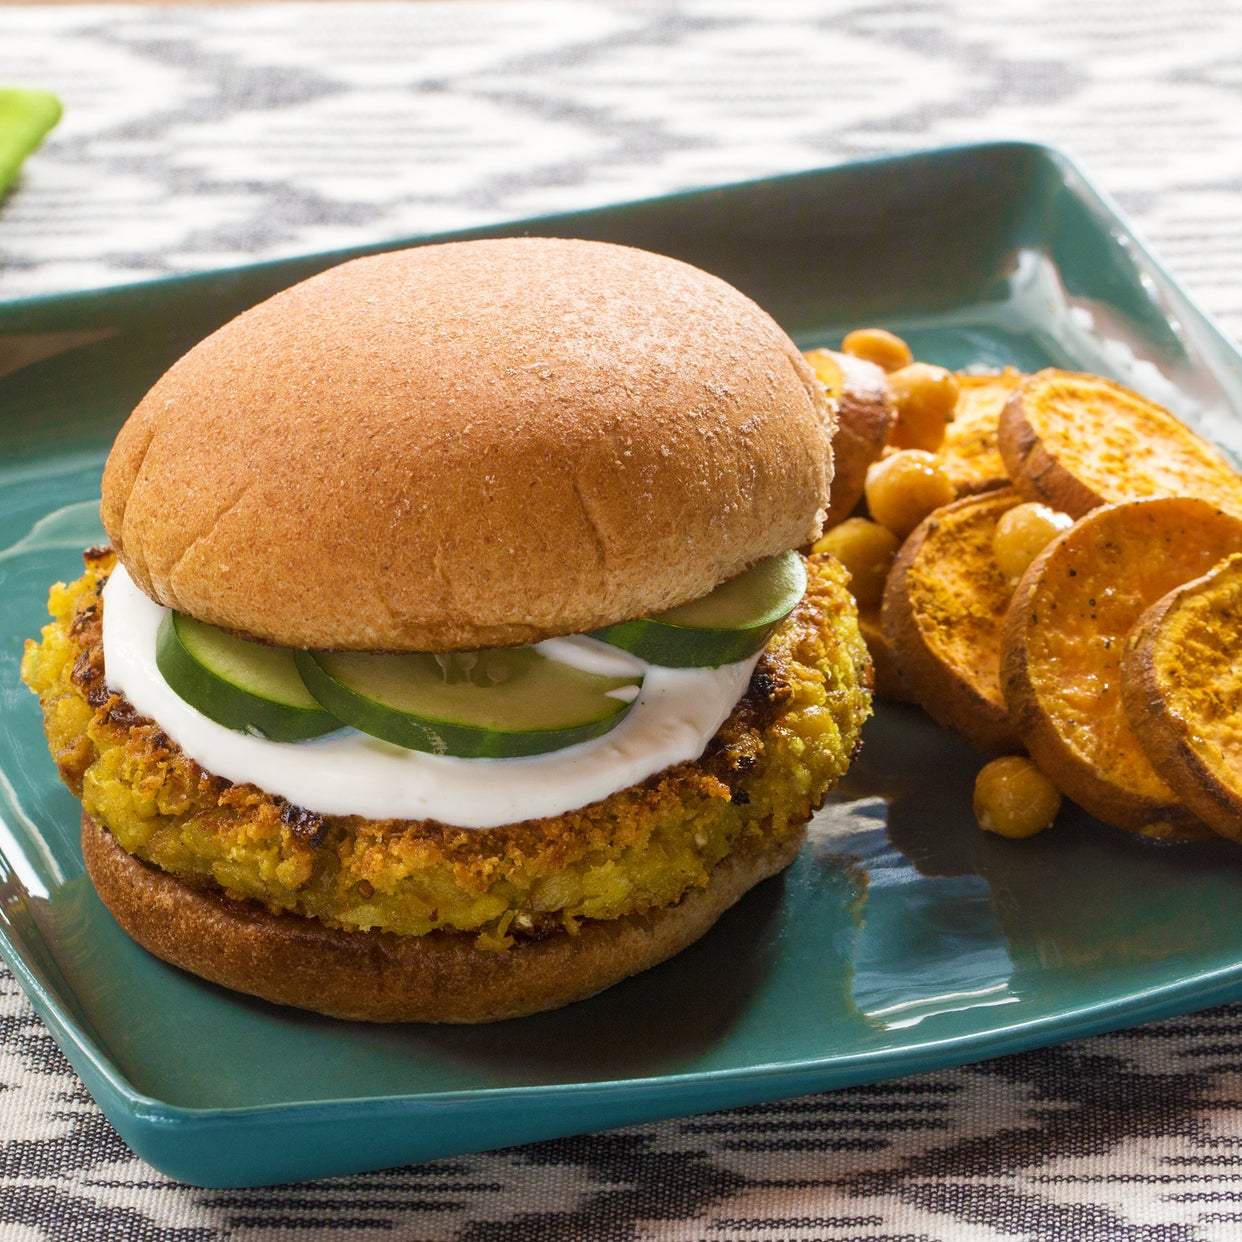 Vadouvan Chickpea Burgers with Roasted Sweet Potato Rounds & Yogurt Sauce